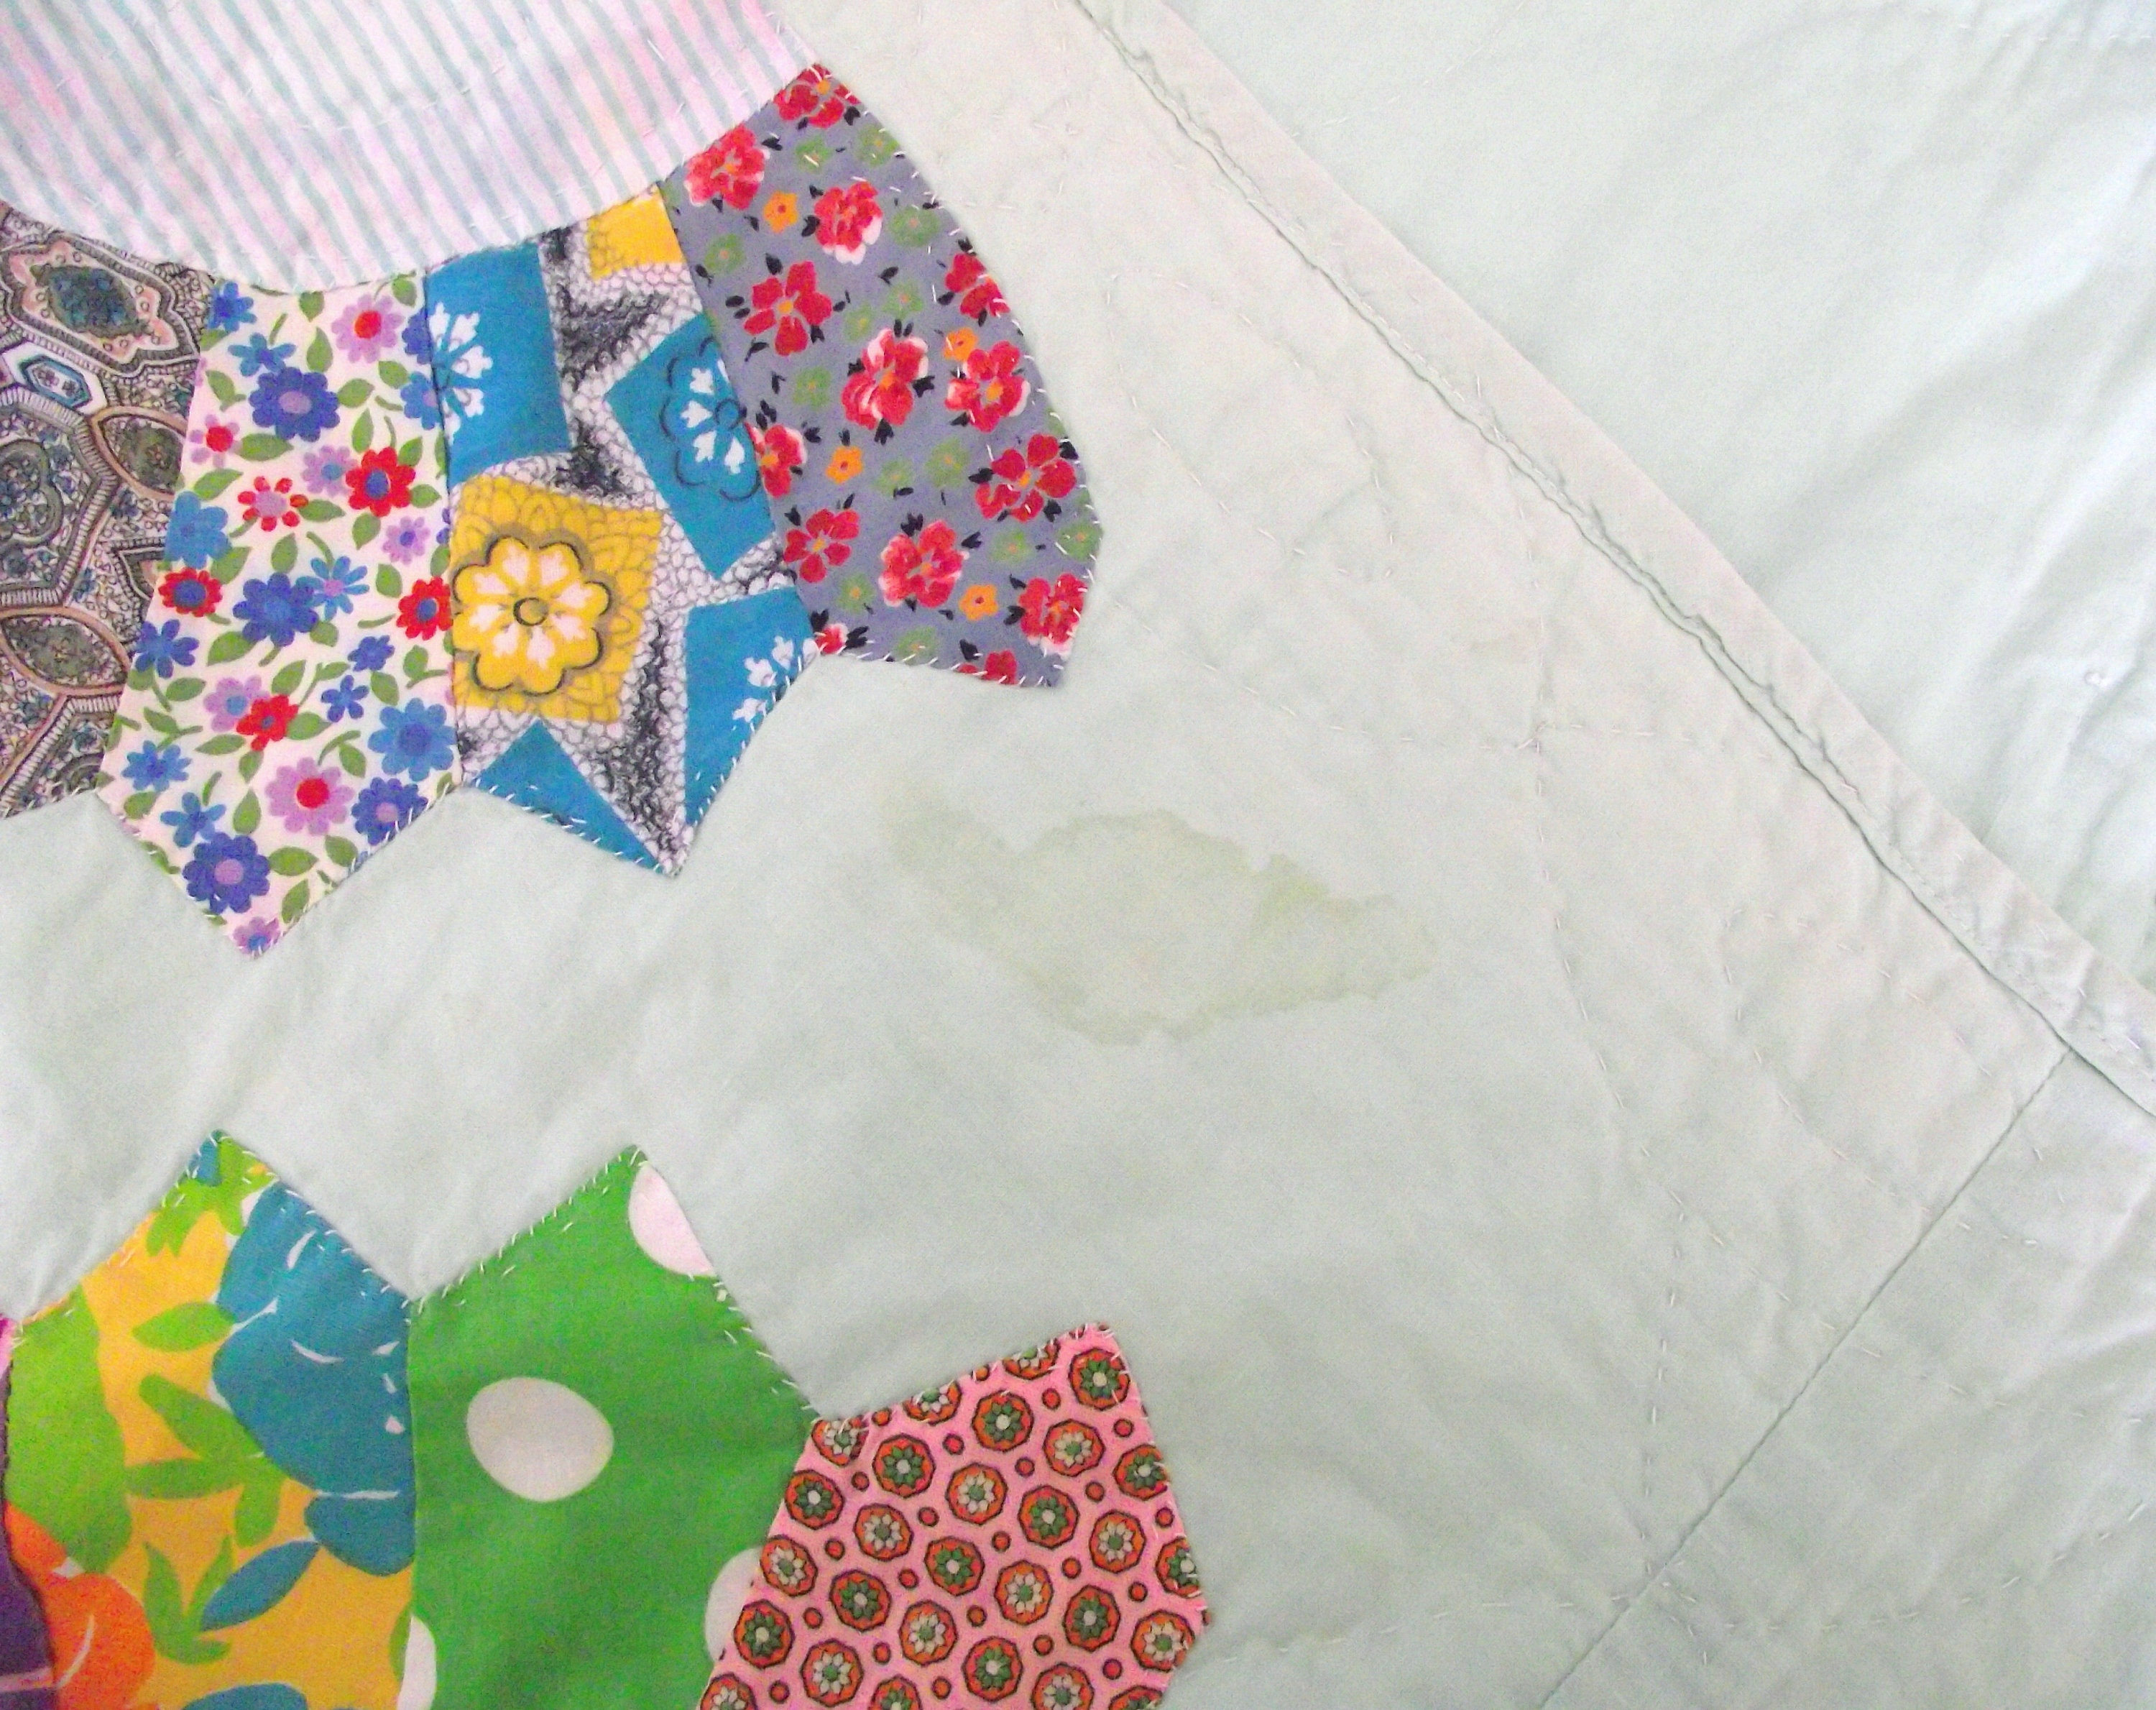 Retro Applique Quilt Hand Stitched Cotton Quilt with Fan Shaped Appliques , Twin Size 61 x 82 Quilt for Spring Bedroom Decor